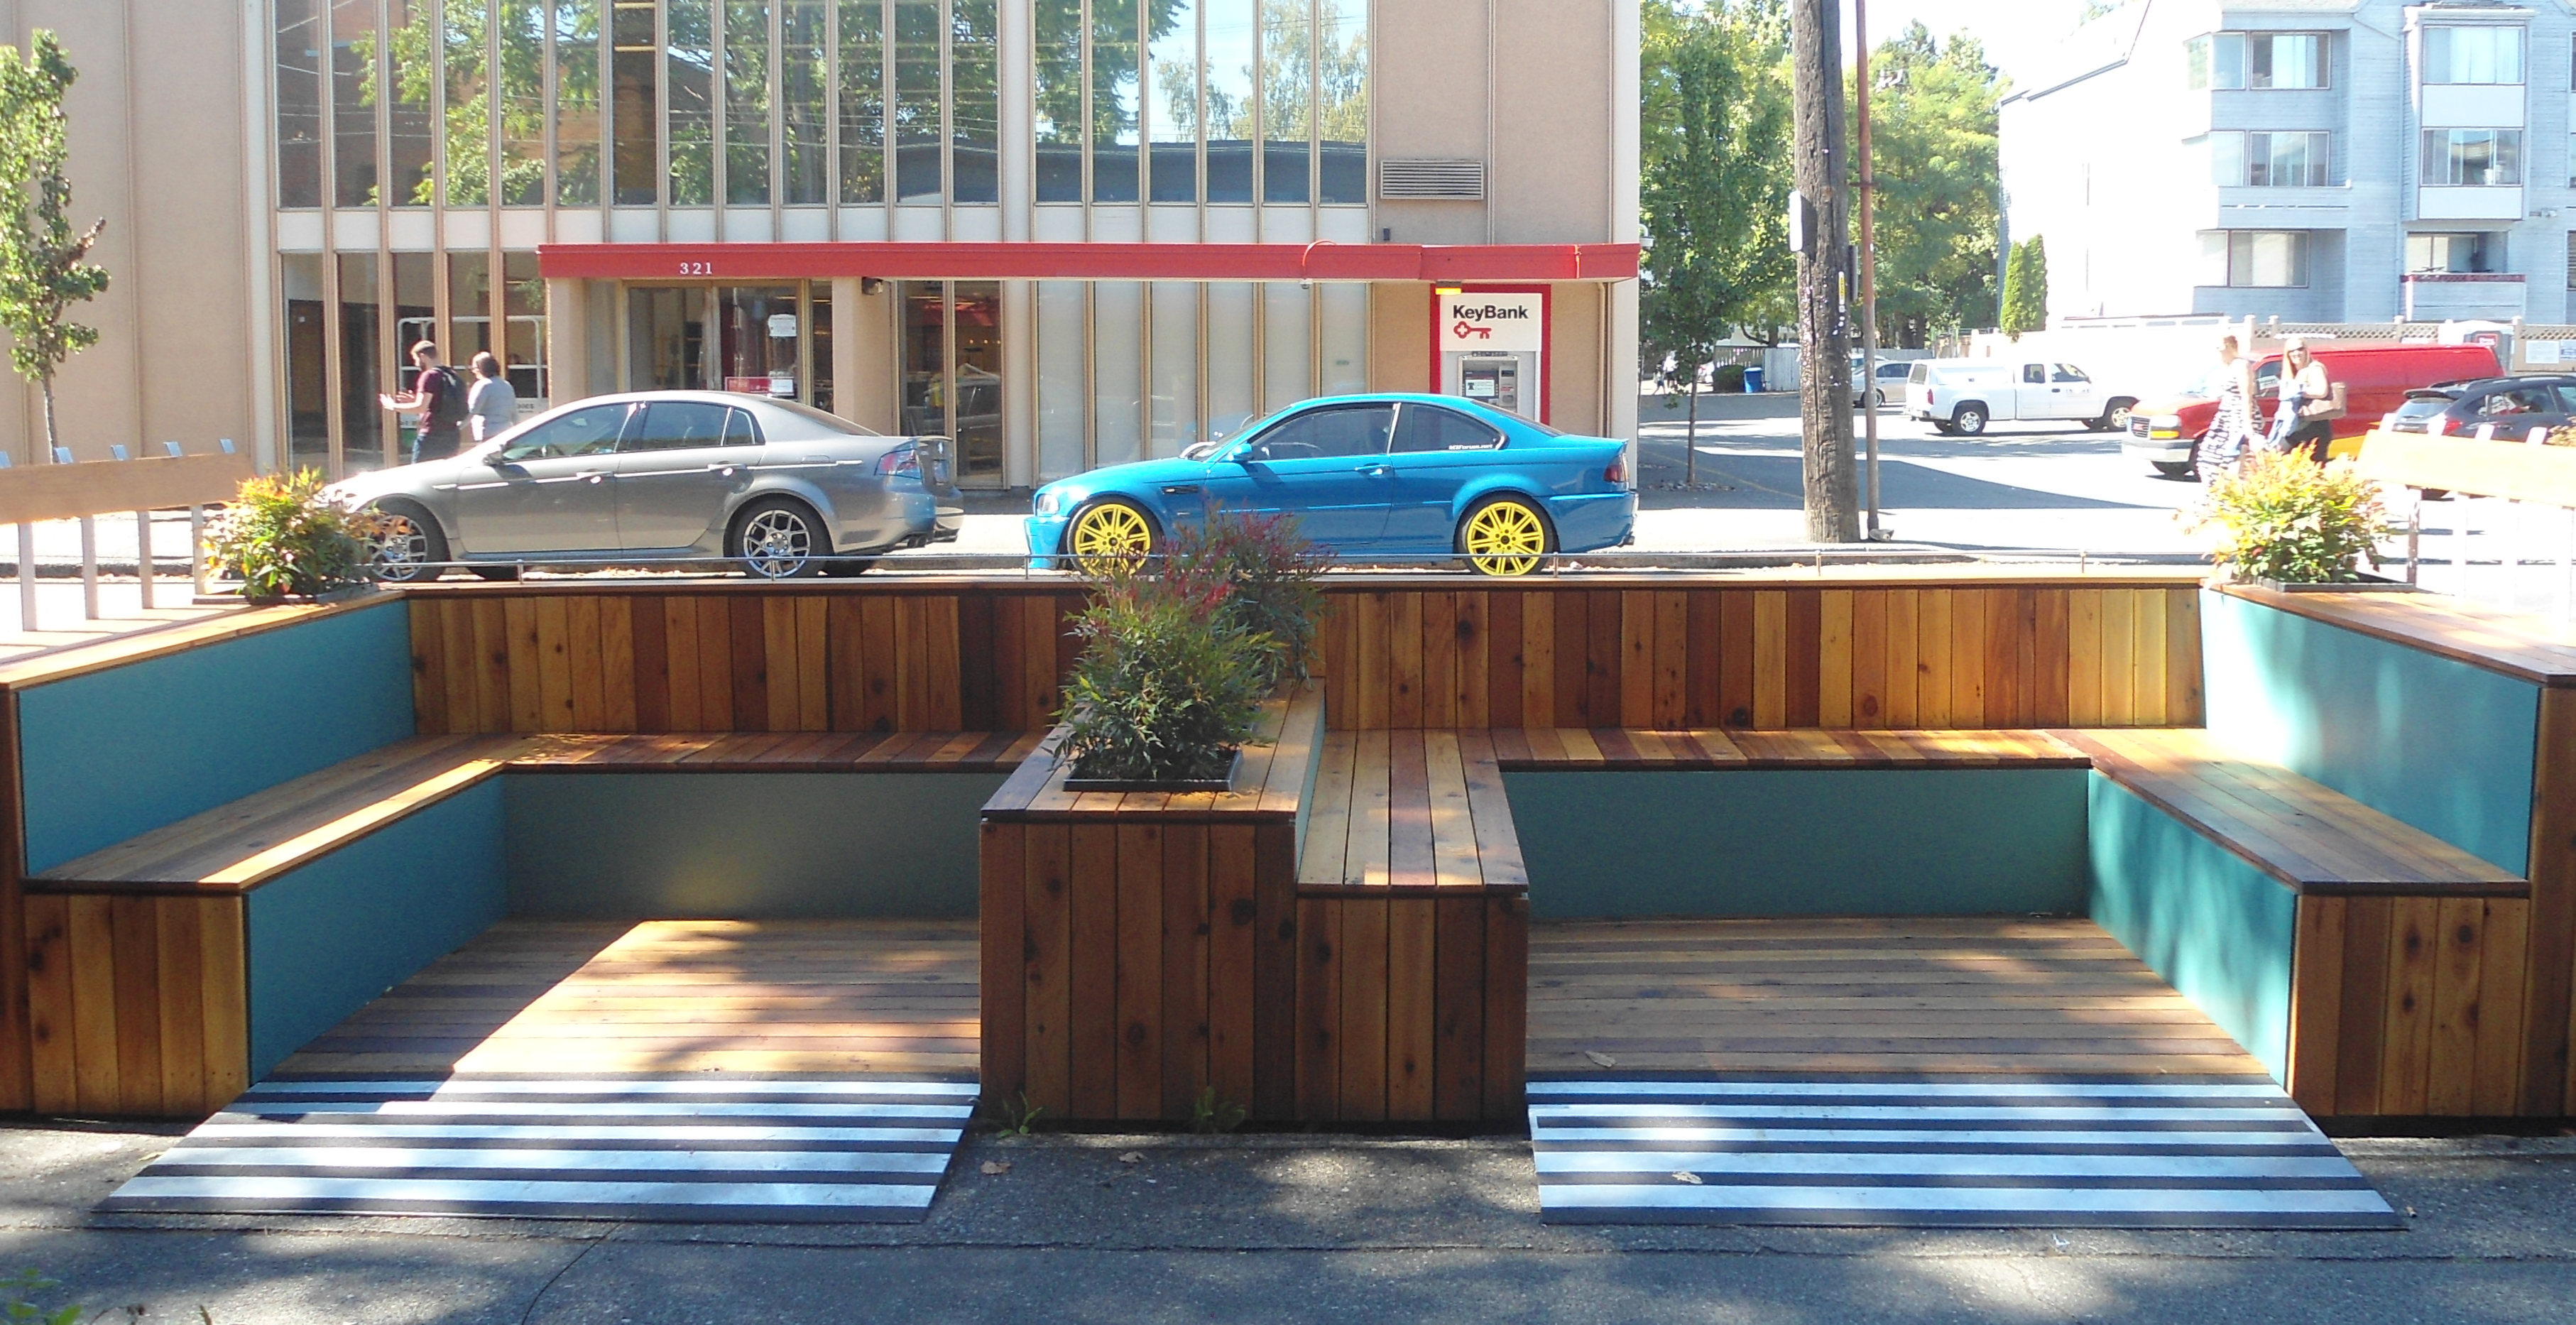 sugarplum_parklet_seattle 5